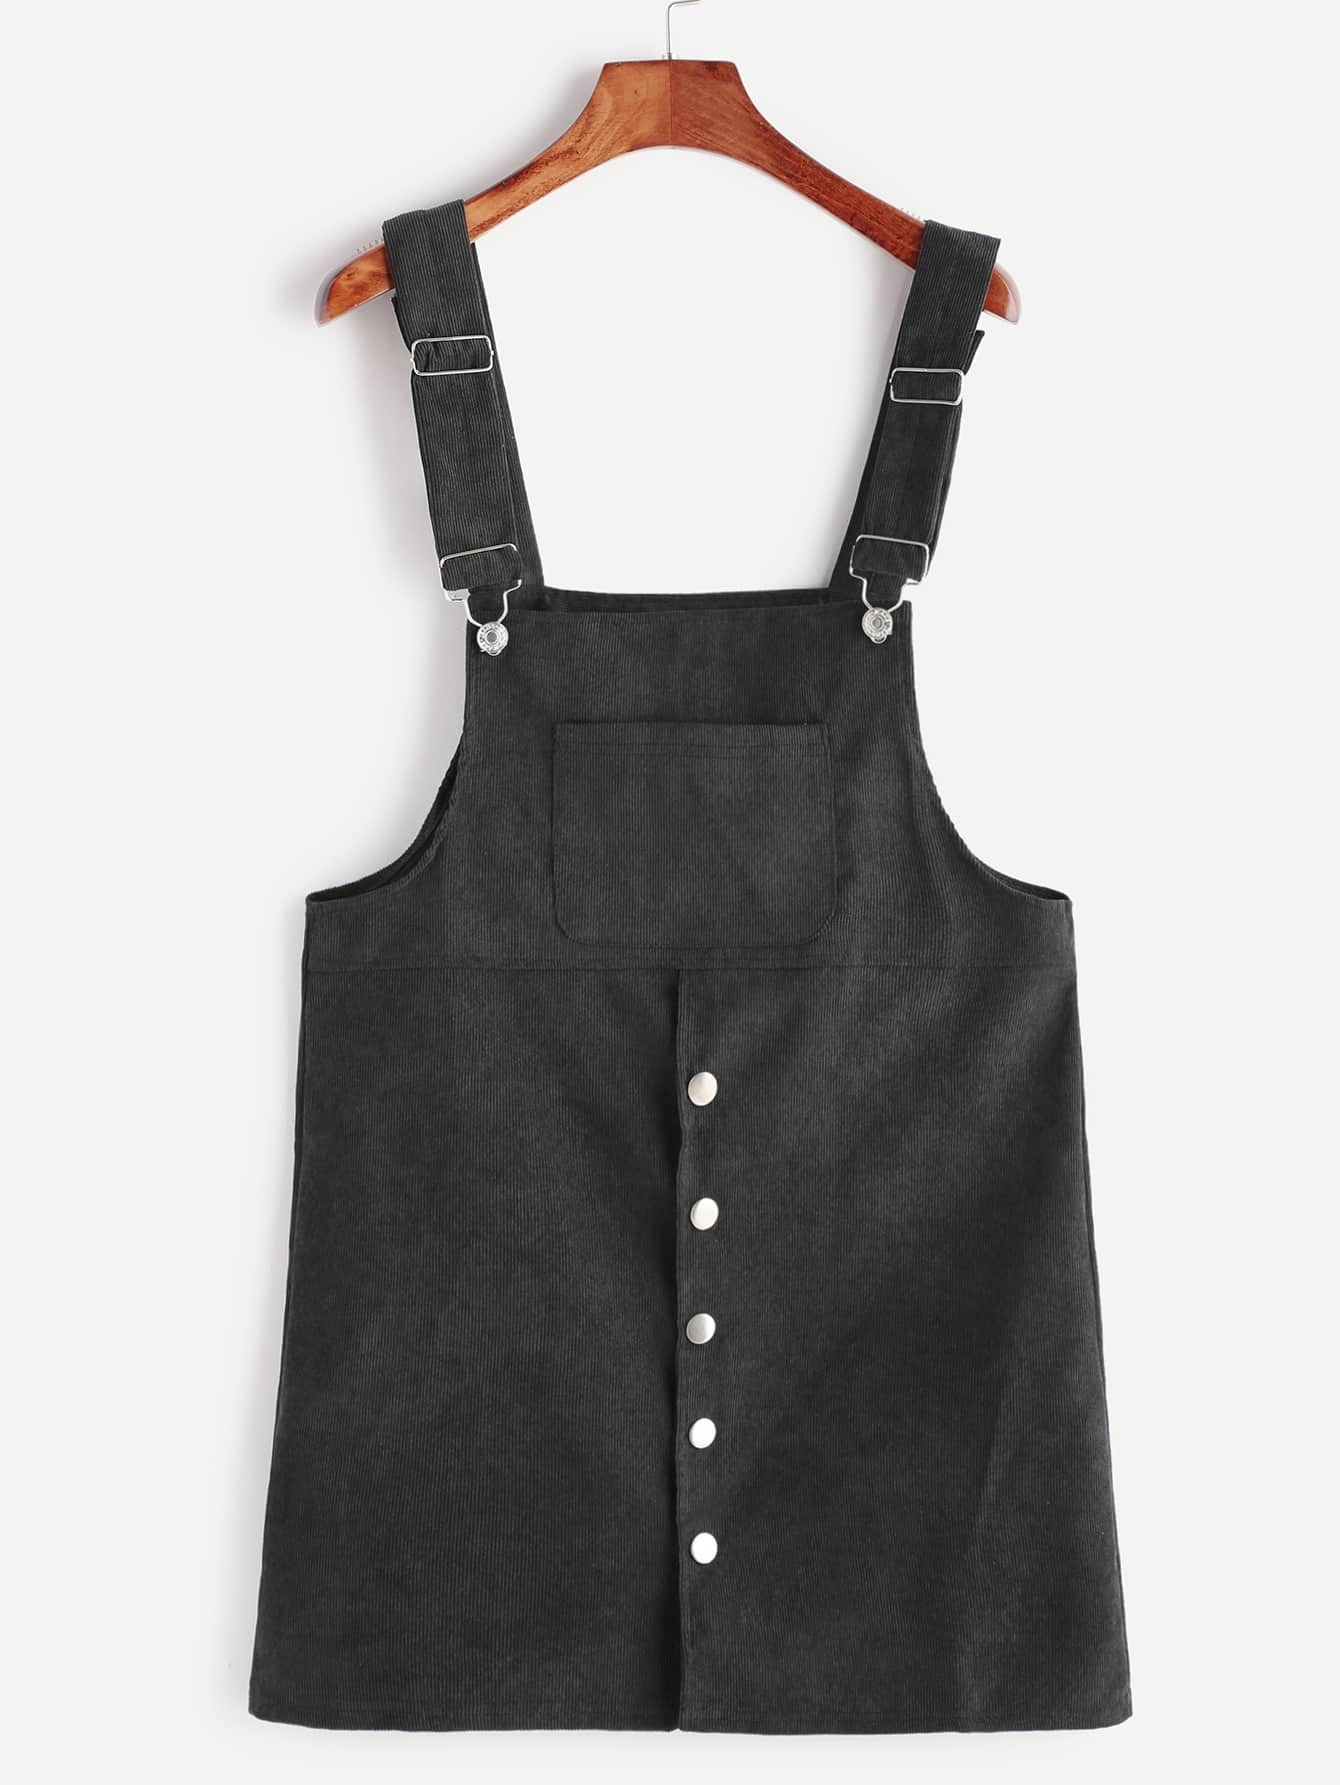 Black Corduroy Single Breasted Overall Dress With Pocket